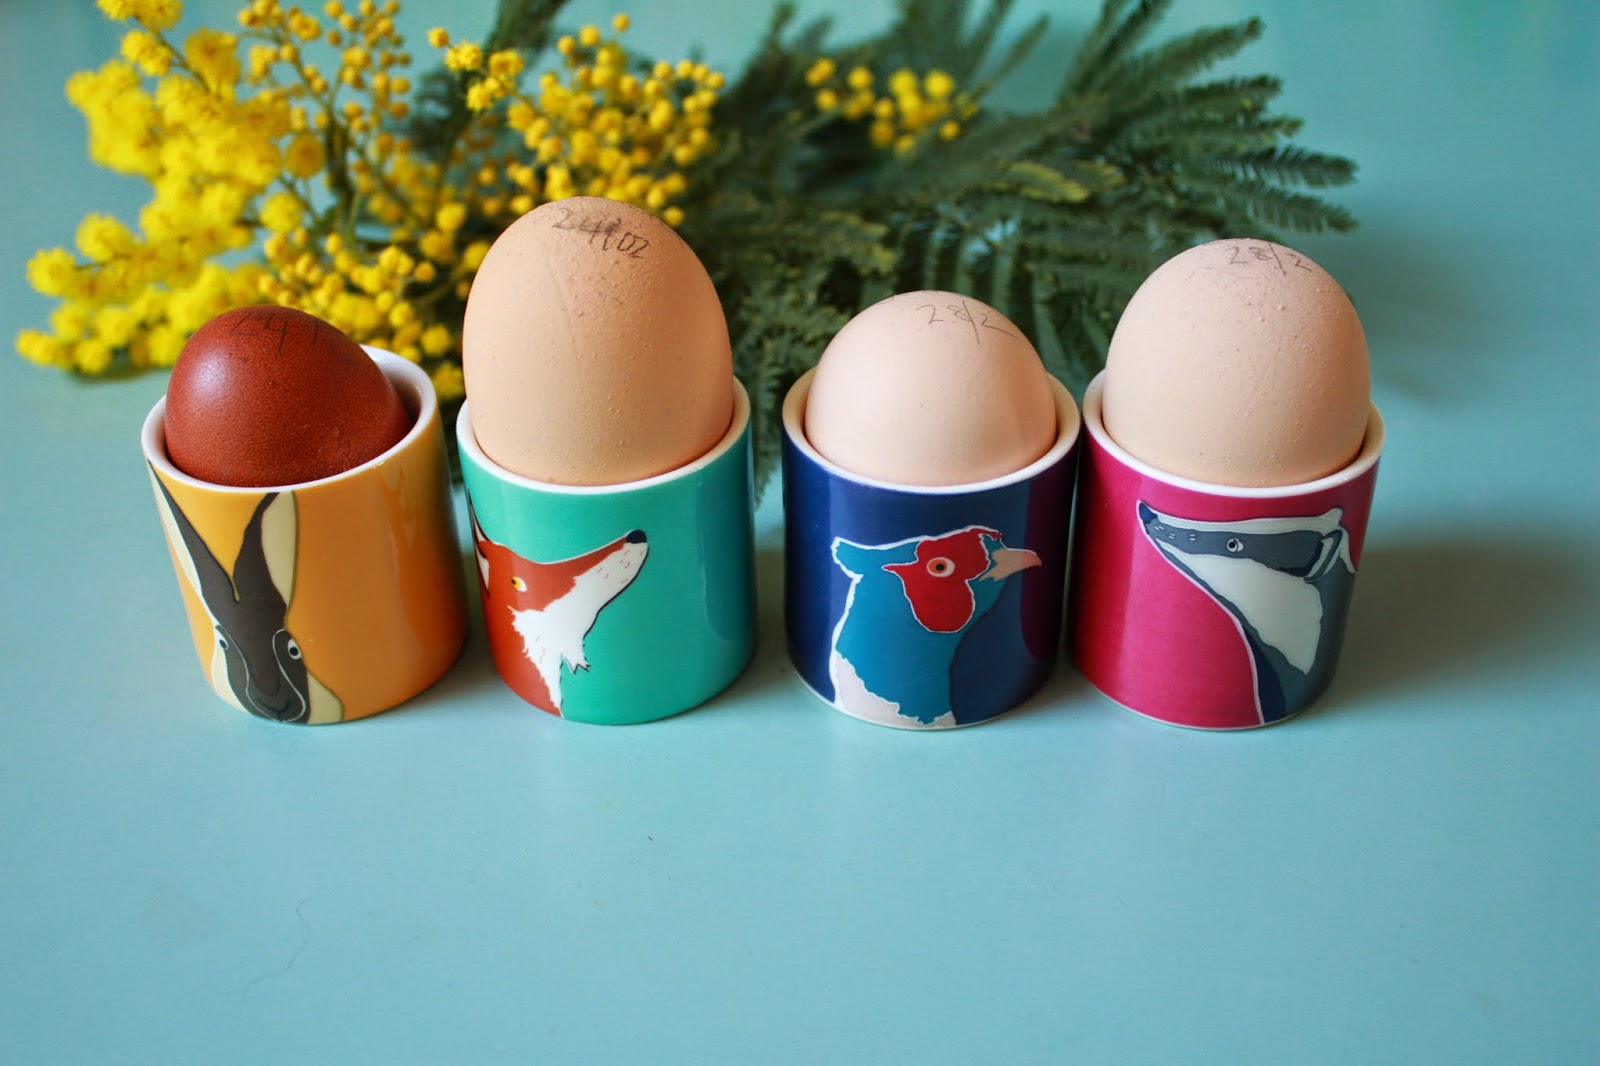 Freshly boiled eggs in pretty little cups